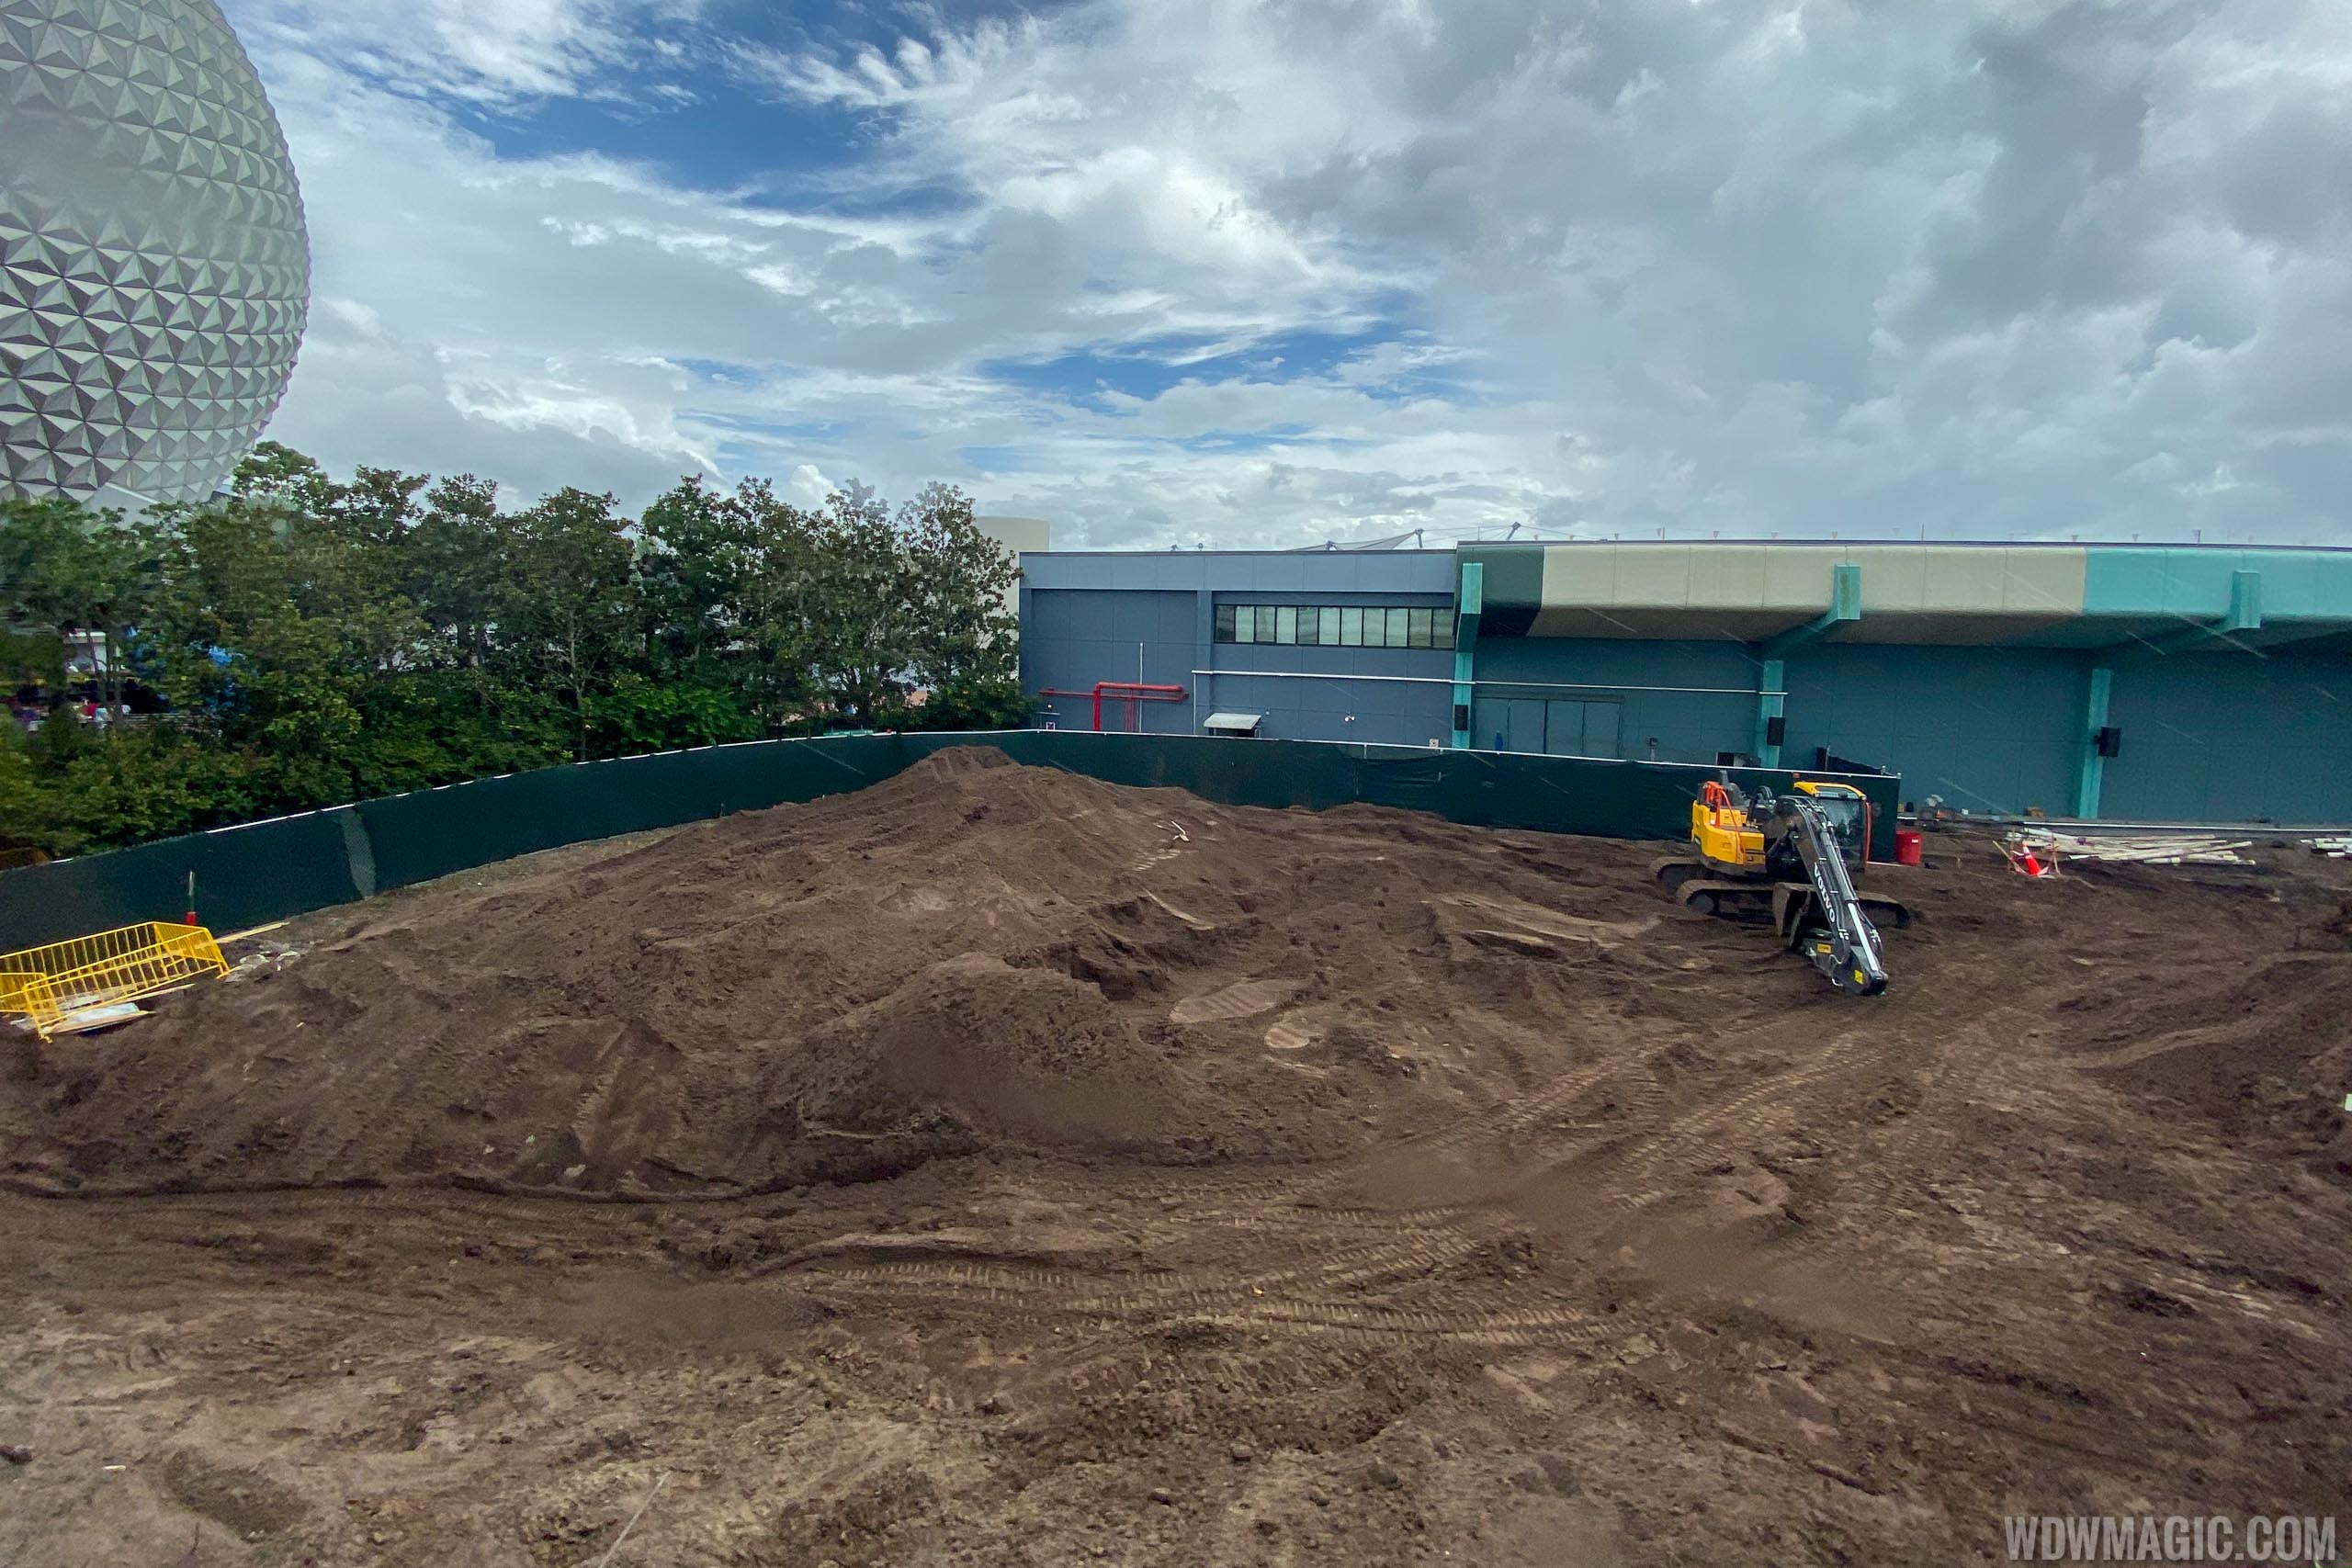 Epcot central area construction October 2019 - Between Living Seas and Innoventions West